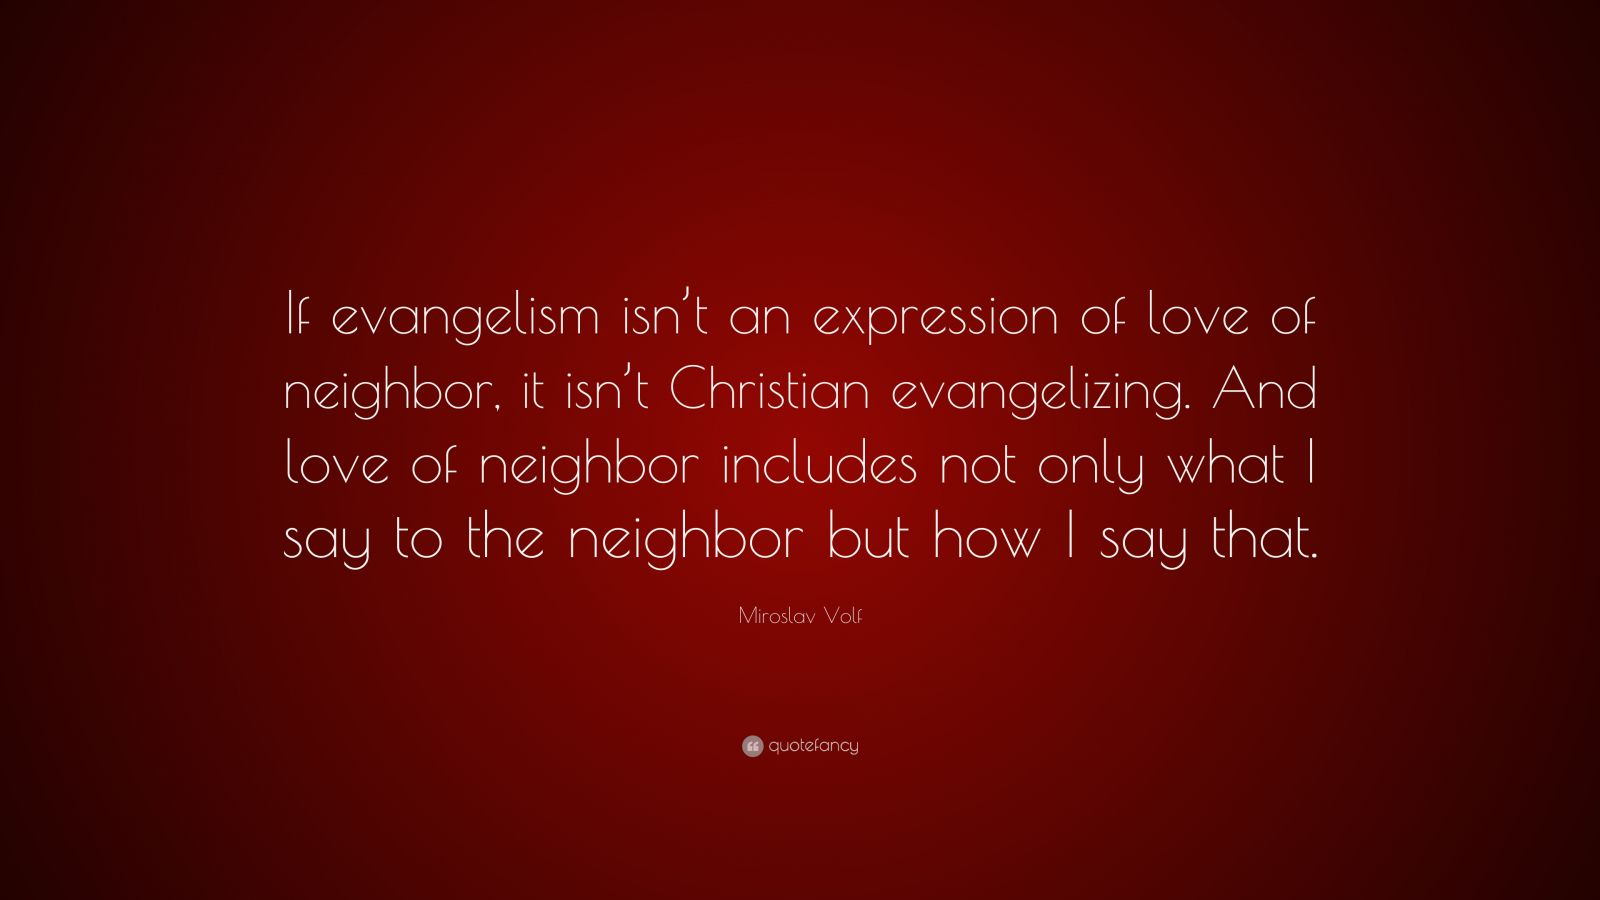 """Miroslav Volf Quote: """"If evangelism isn't an expression of love of neighbor, it isn't Christian evangelizing. And love of neighbor includes not only what I say to the neighbor but how I say that."""""""